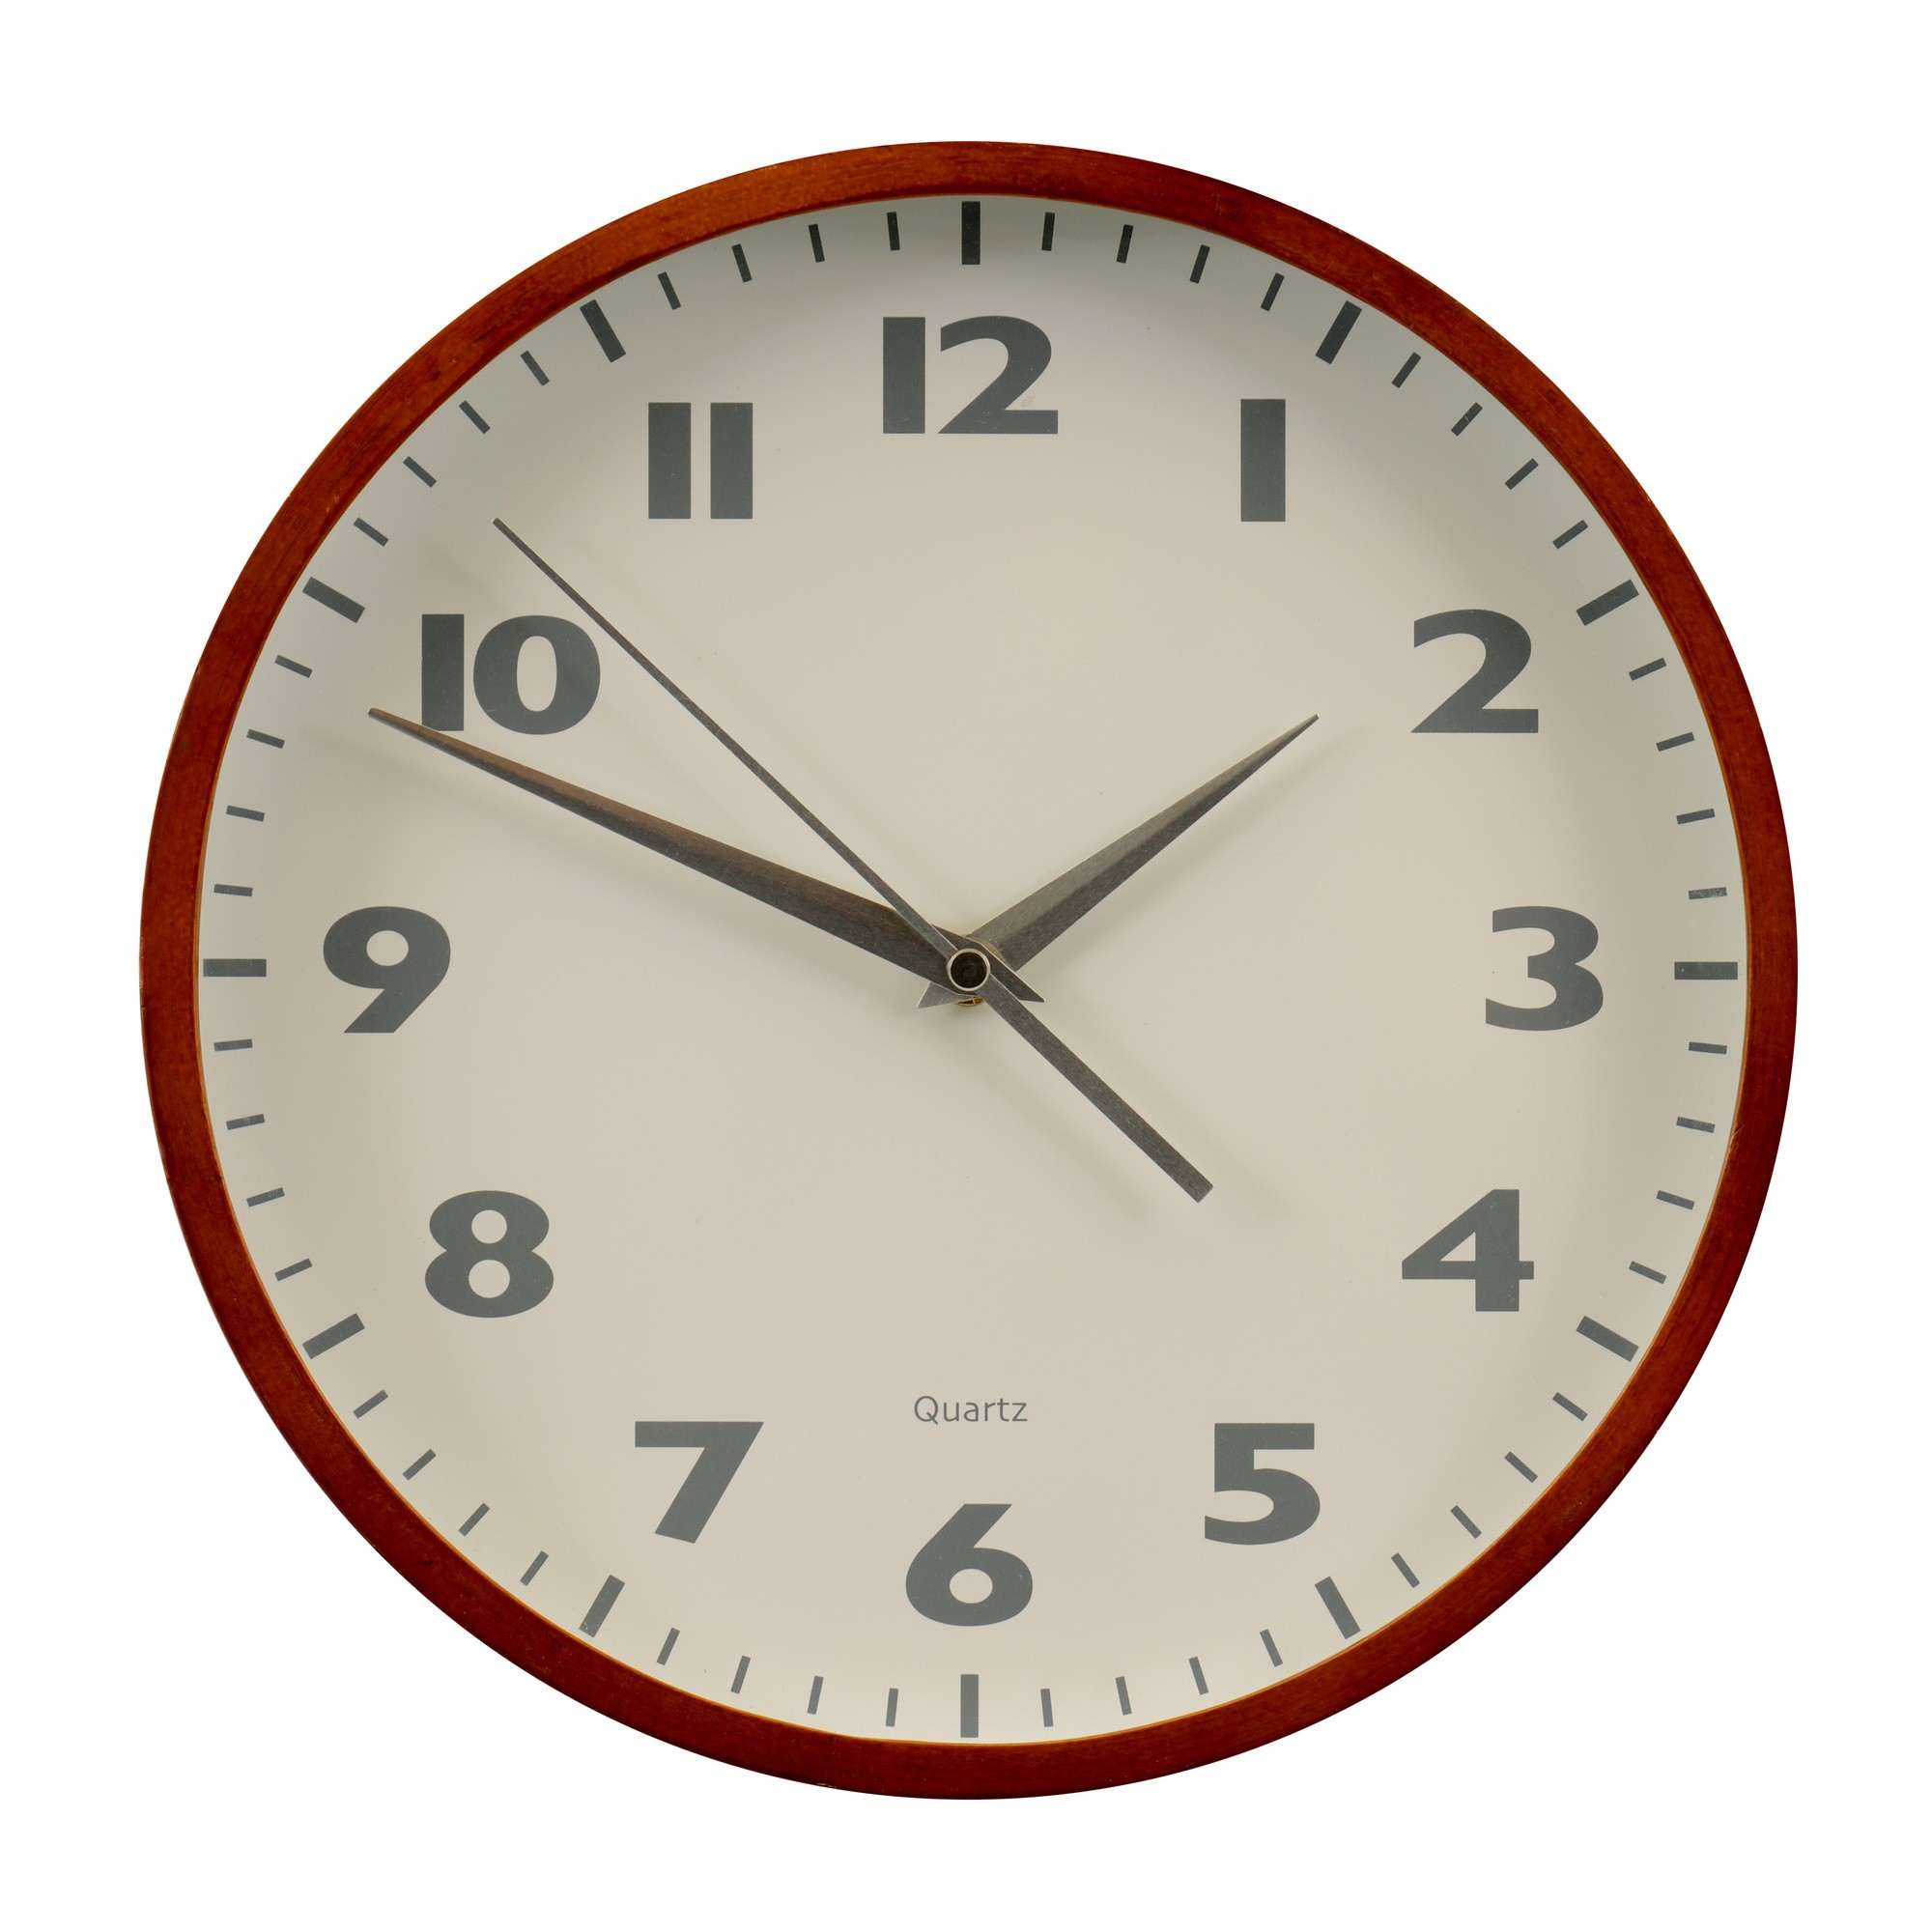 Clock With No Hands Images Stock Photos amp Vectors